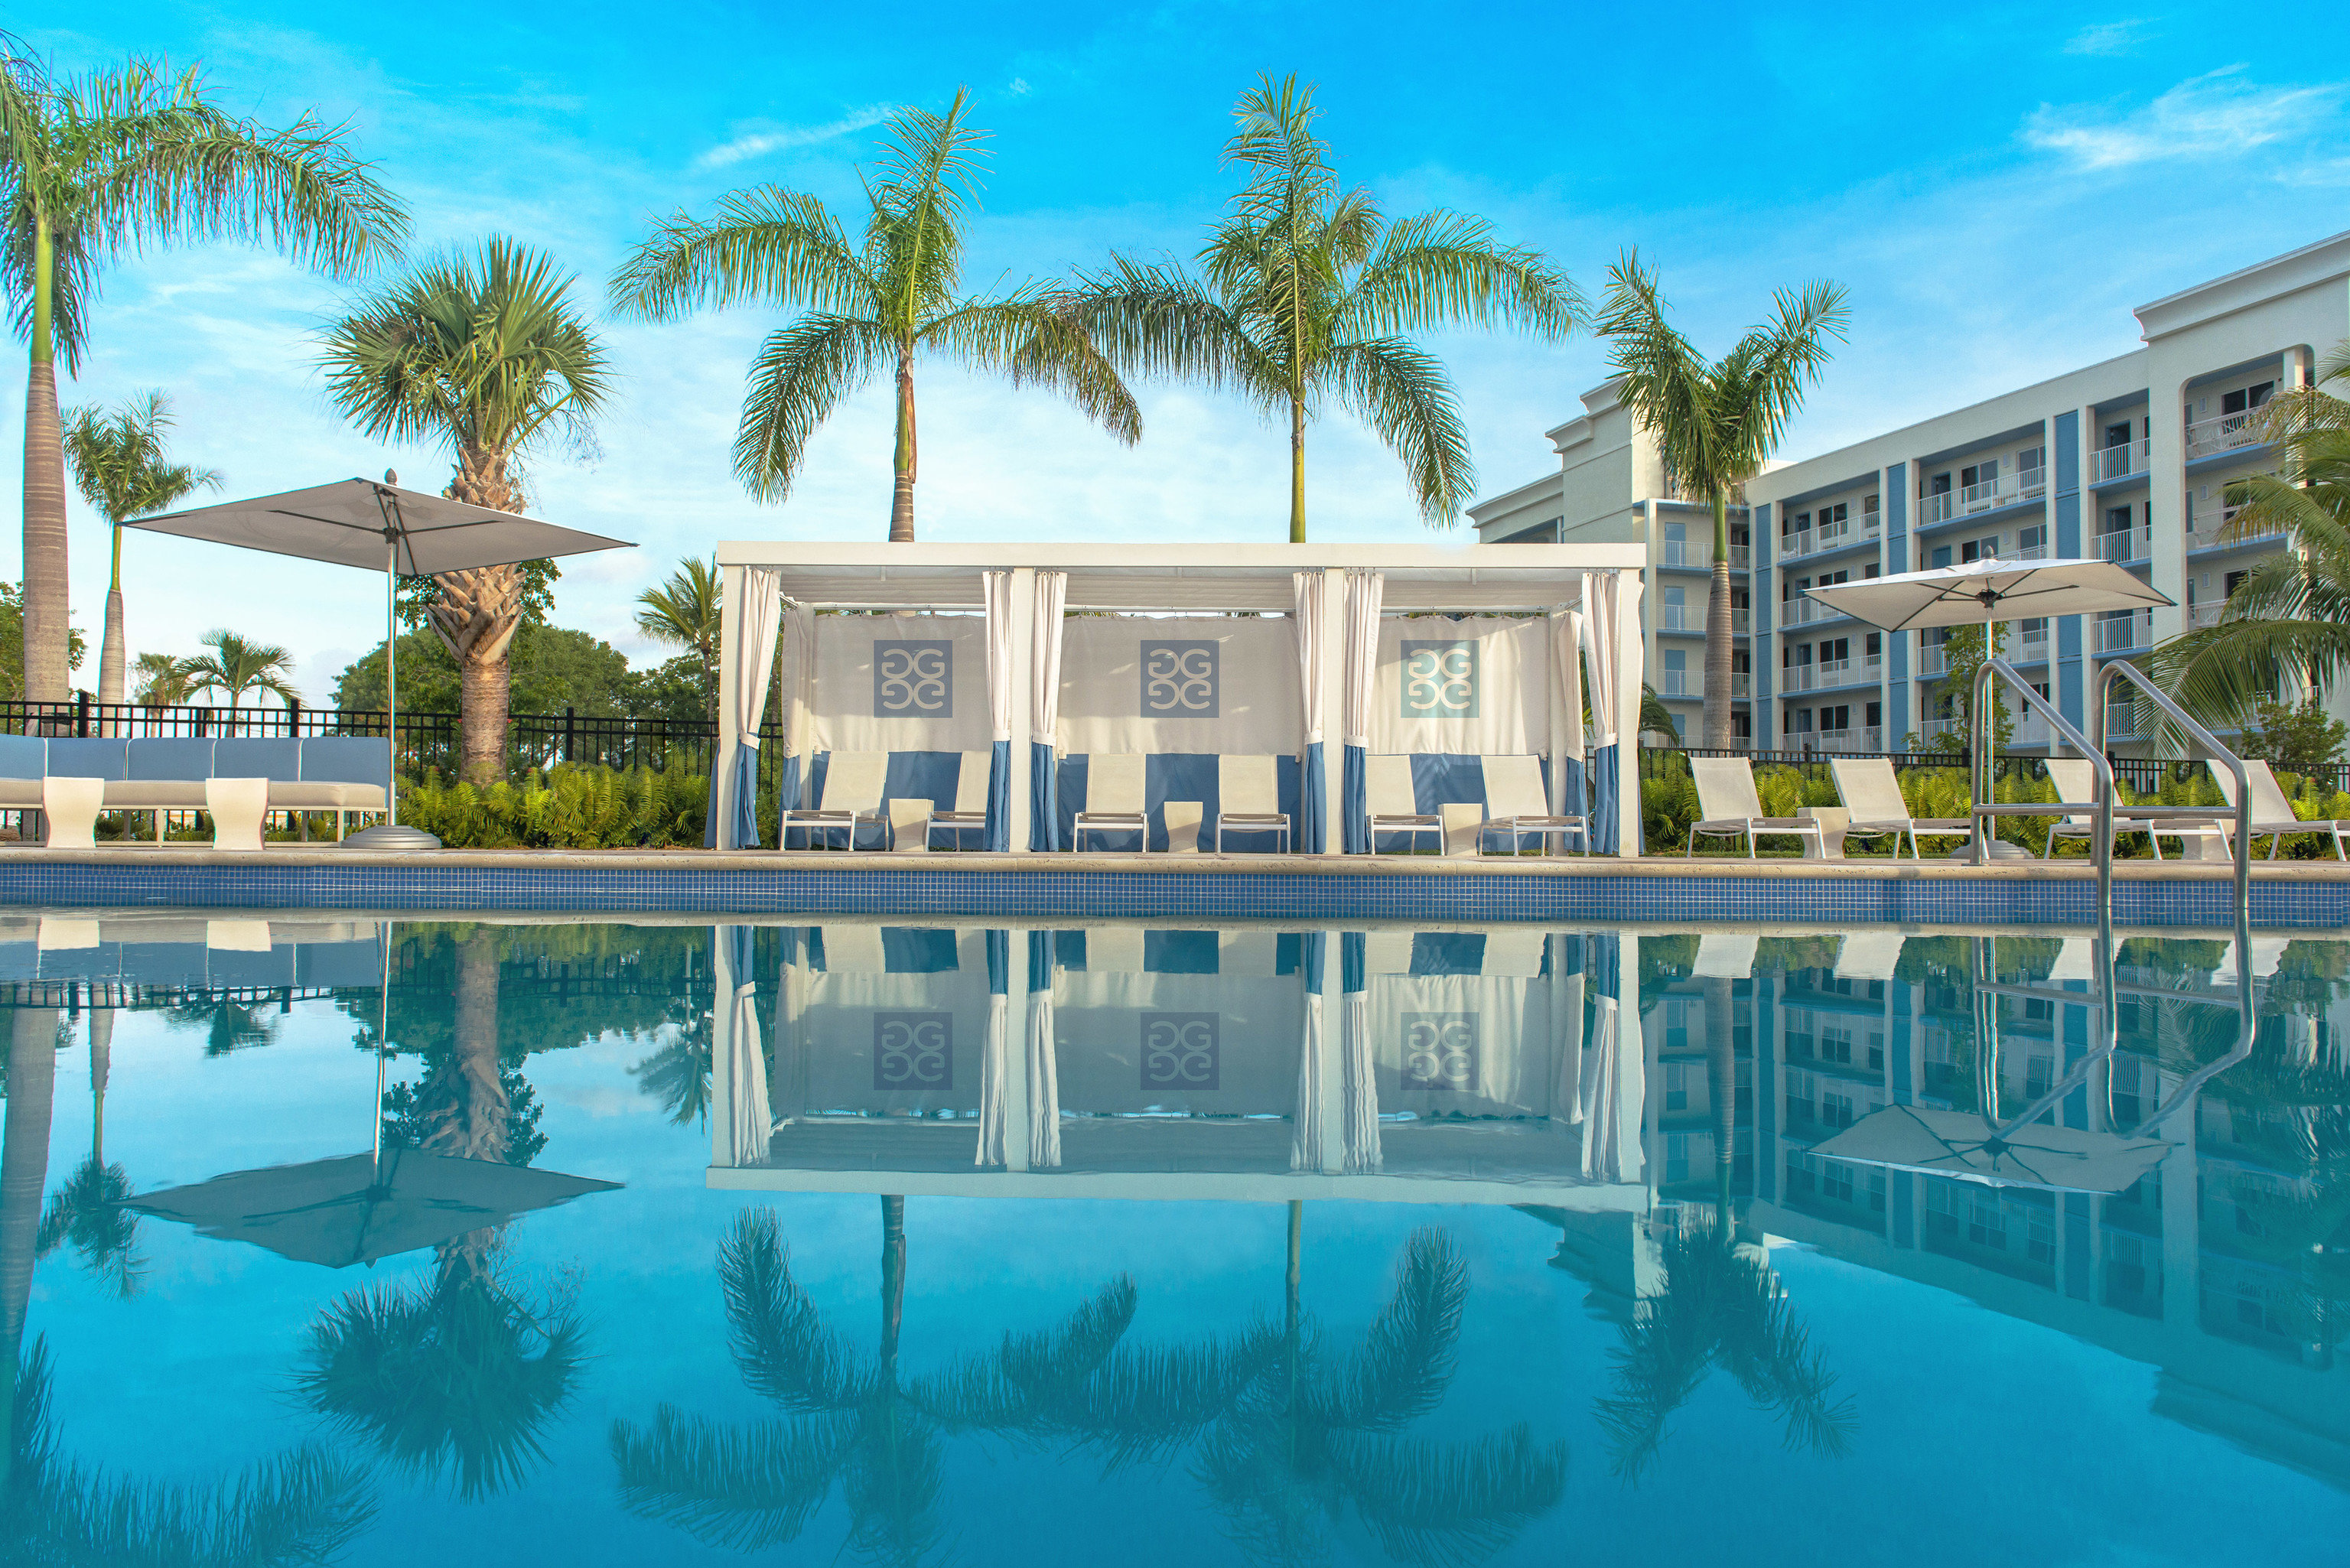 Florida Hotels tree sky swimming pool building property Resort condominium leisure mansion home reflecting pool Villa resort town palace surrounded